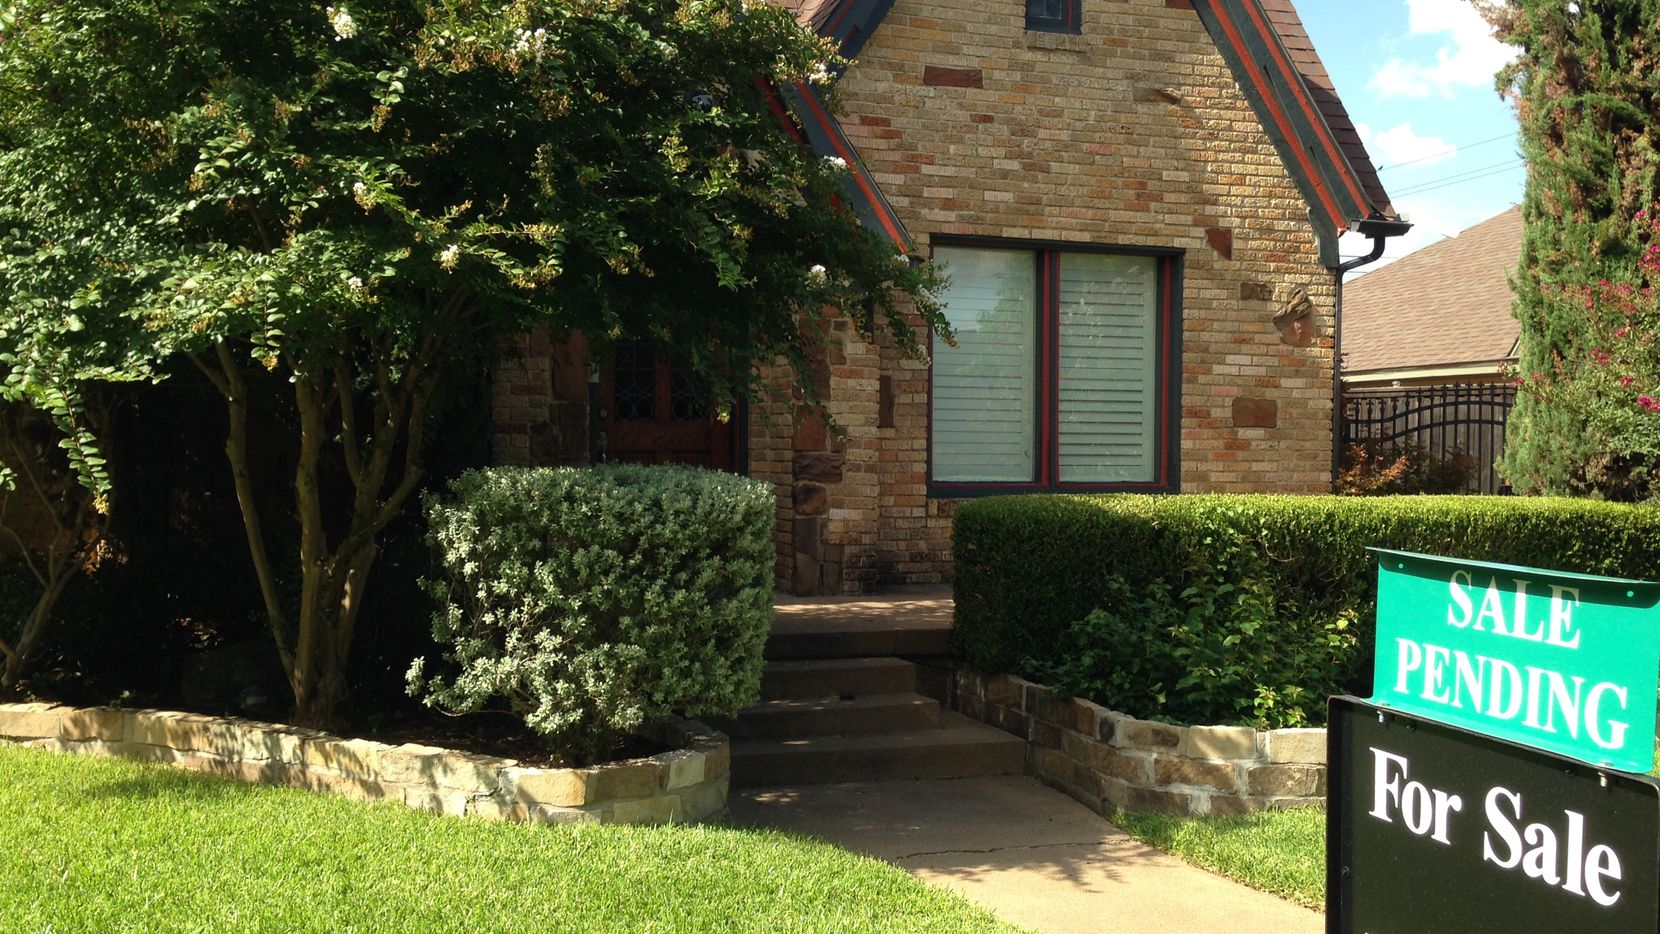 Statewide home sales were up 2.8 percent in the second quarter but declined slightly in the D-FW area from a year ago.